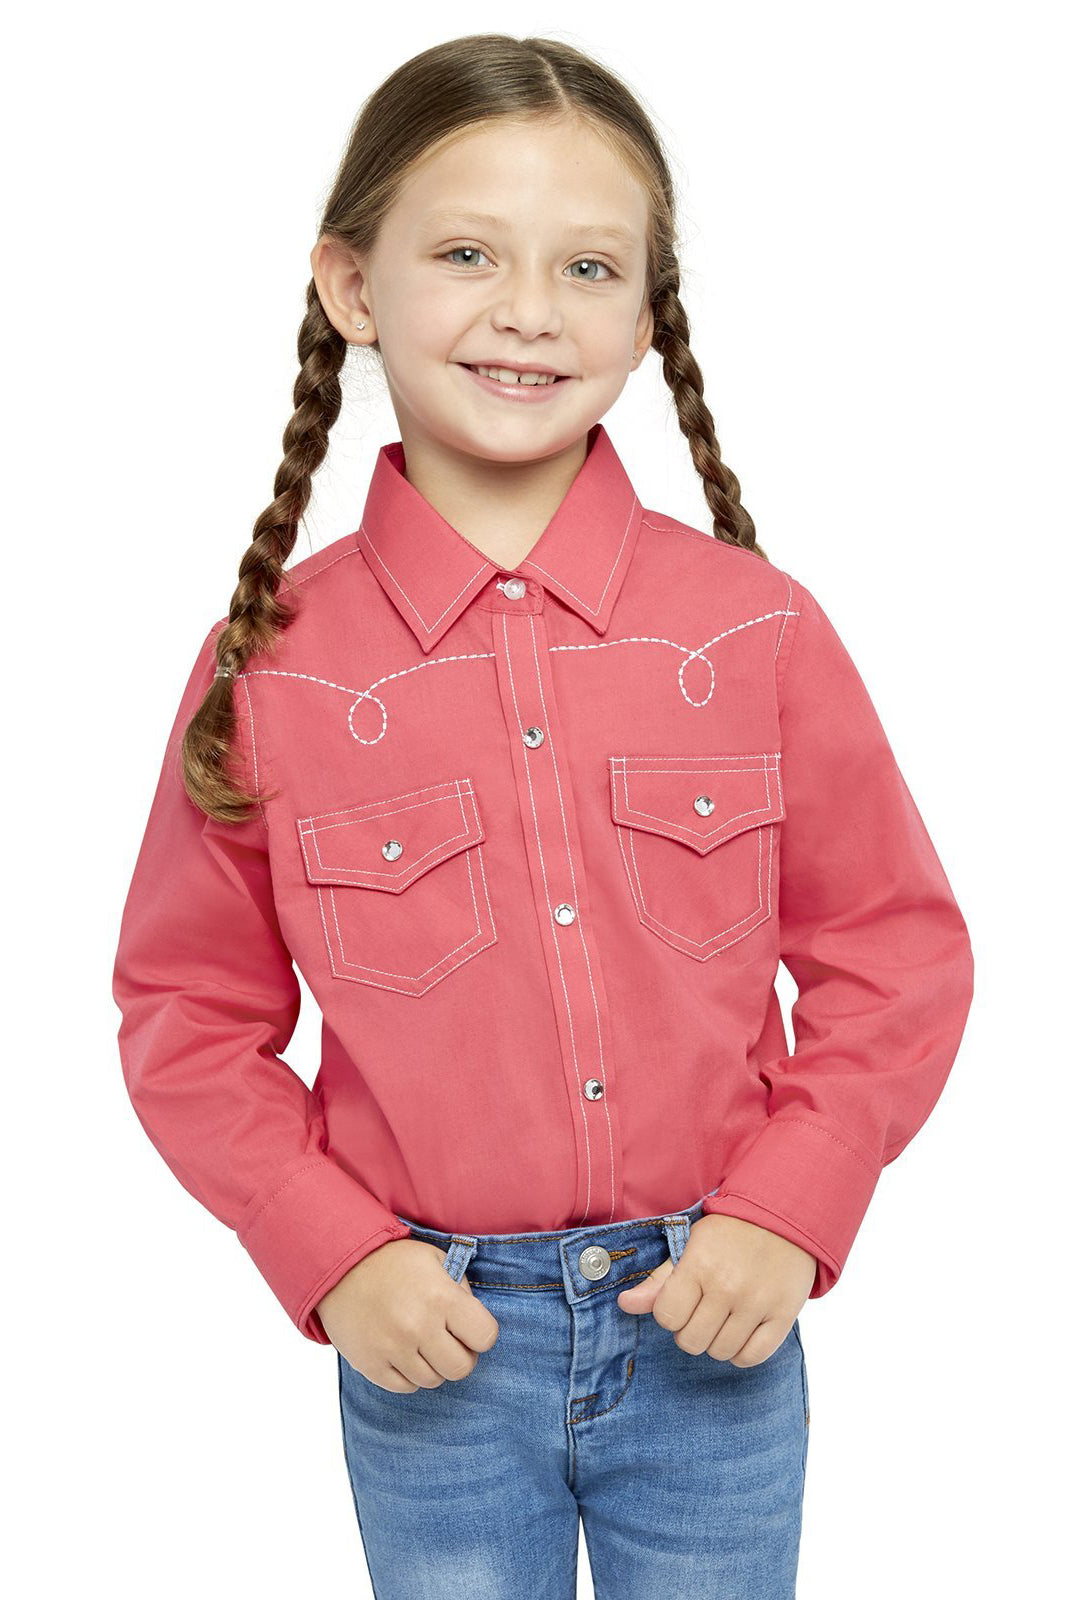 Girl's Long Sleeve Shirt With Embroidery | Ely Cattleman